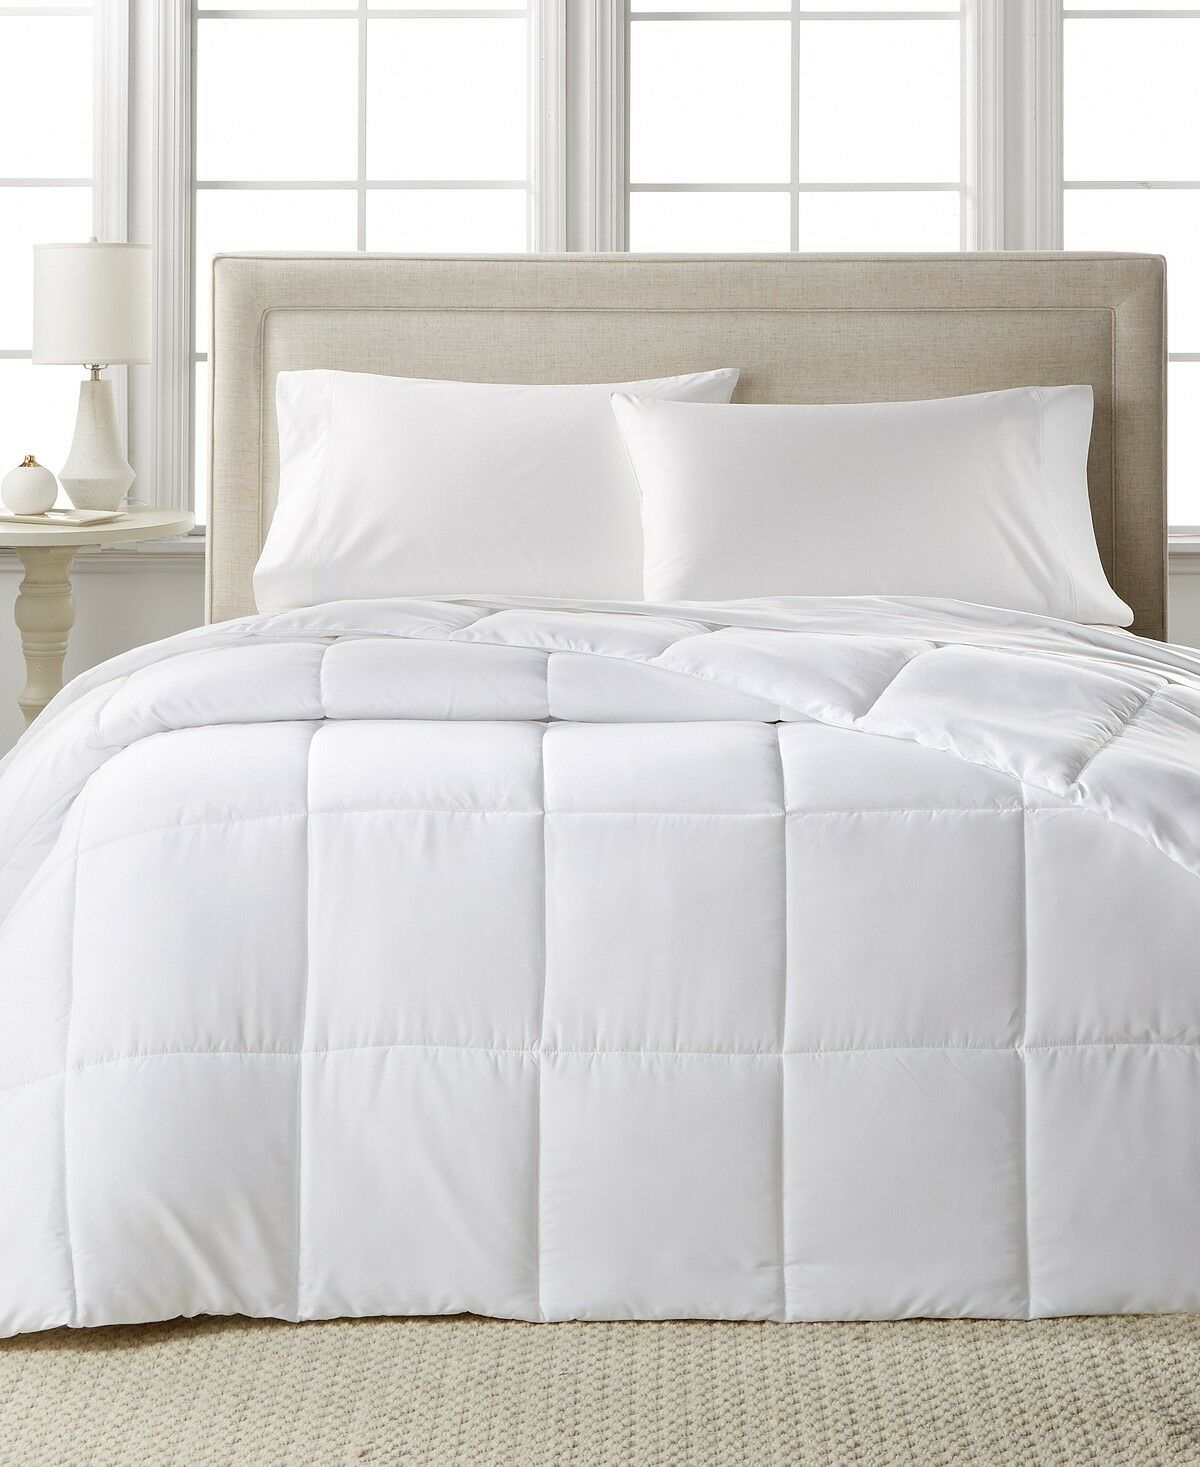 Home Design Down Alternative Comforter Full Queen